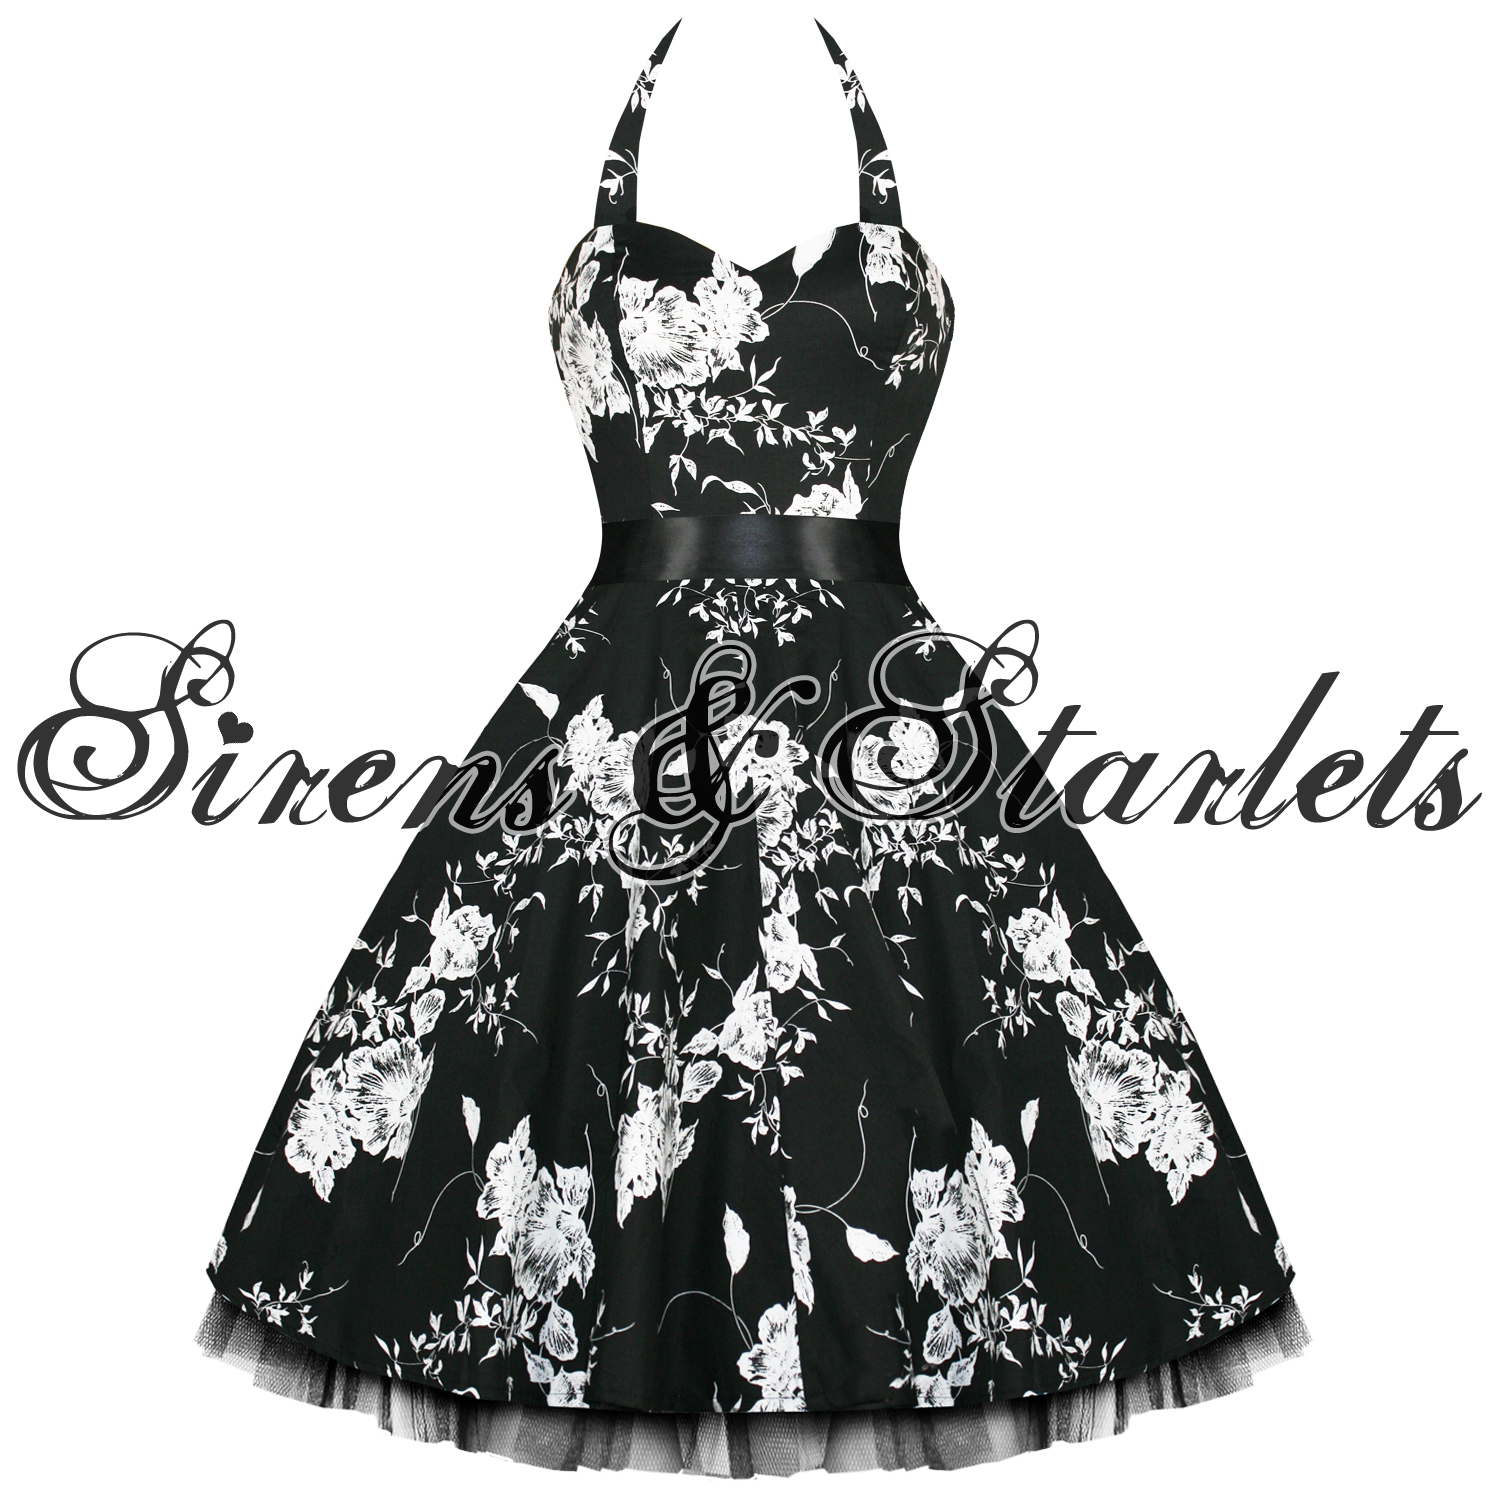 Dress-Womens-Rockabilly-Party-Prom-Swing-VTG-1950s-50s-Pinup-Black-White-Floral